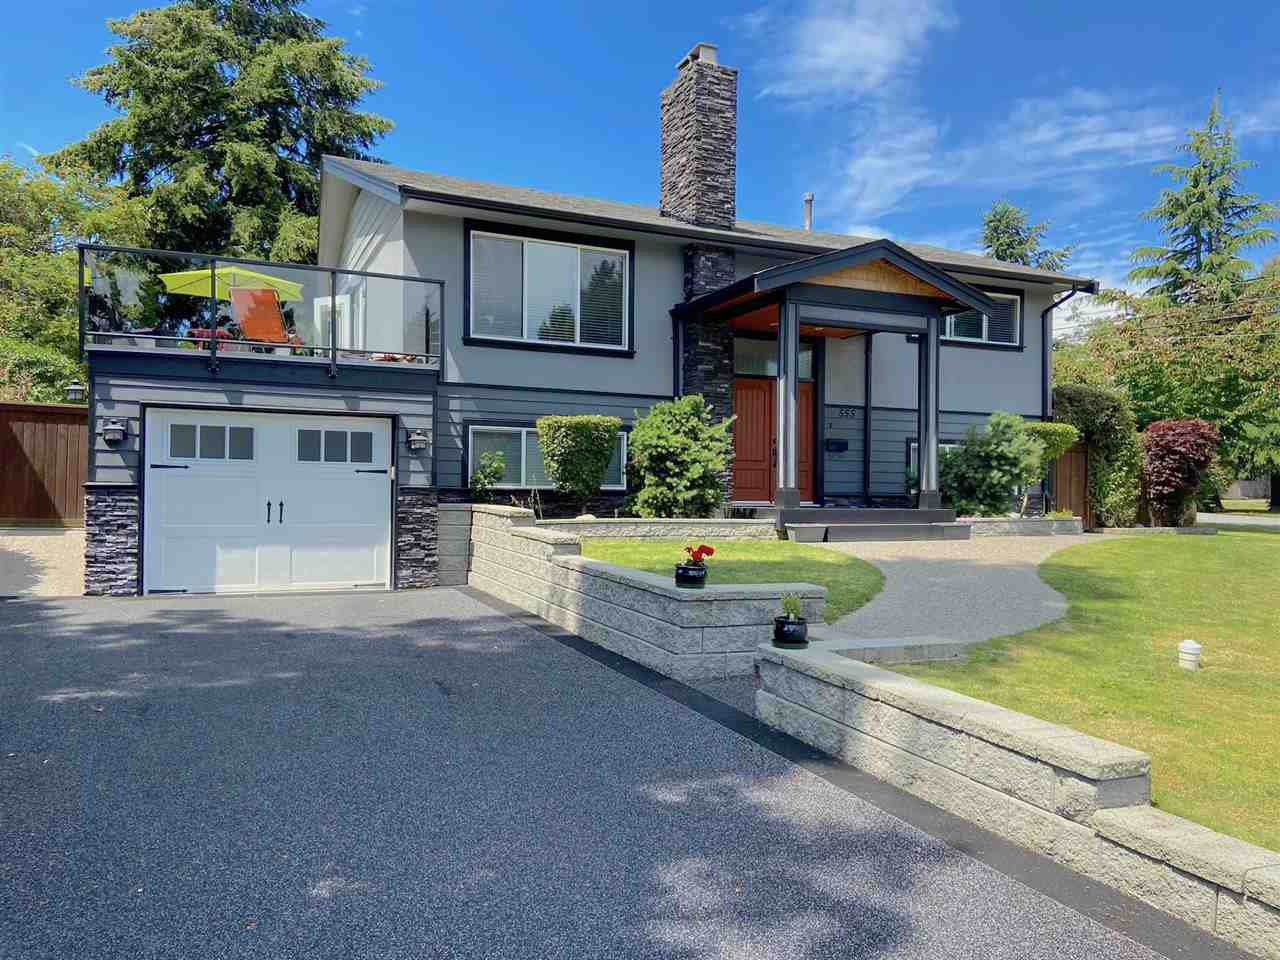 "Main Photo: 555 55A Street in Delta: Pebble Hill House for sale in ""PEBBLE HILL"" (Tsawwassen)  : MLS®# R2481635"